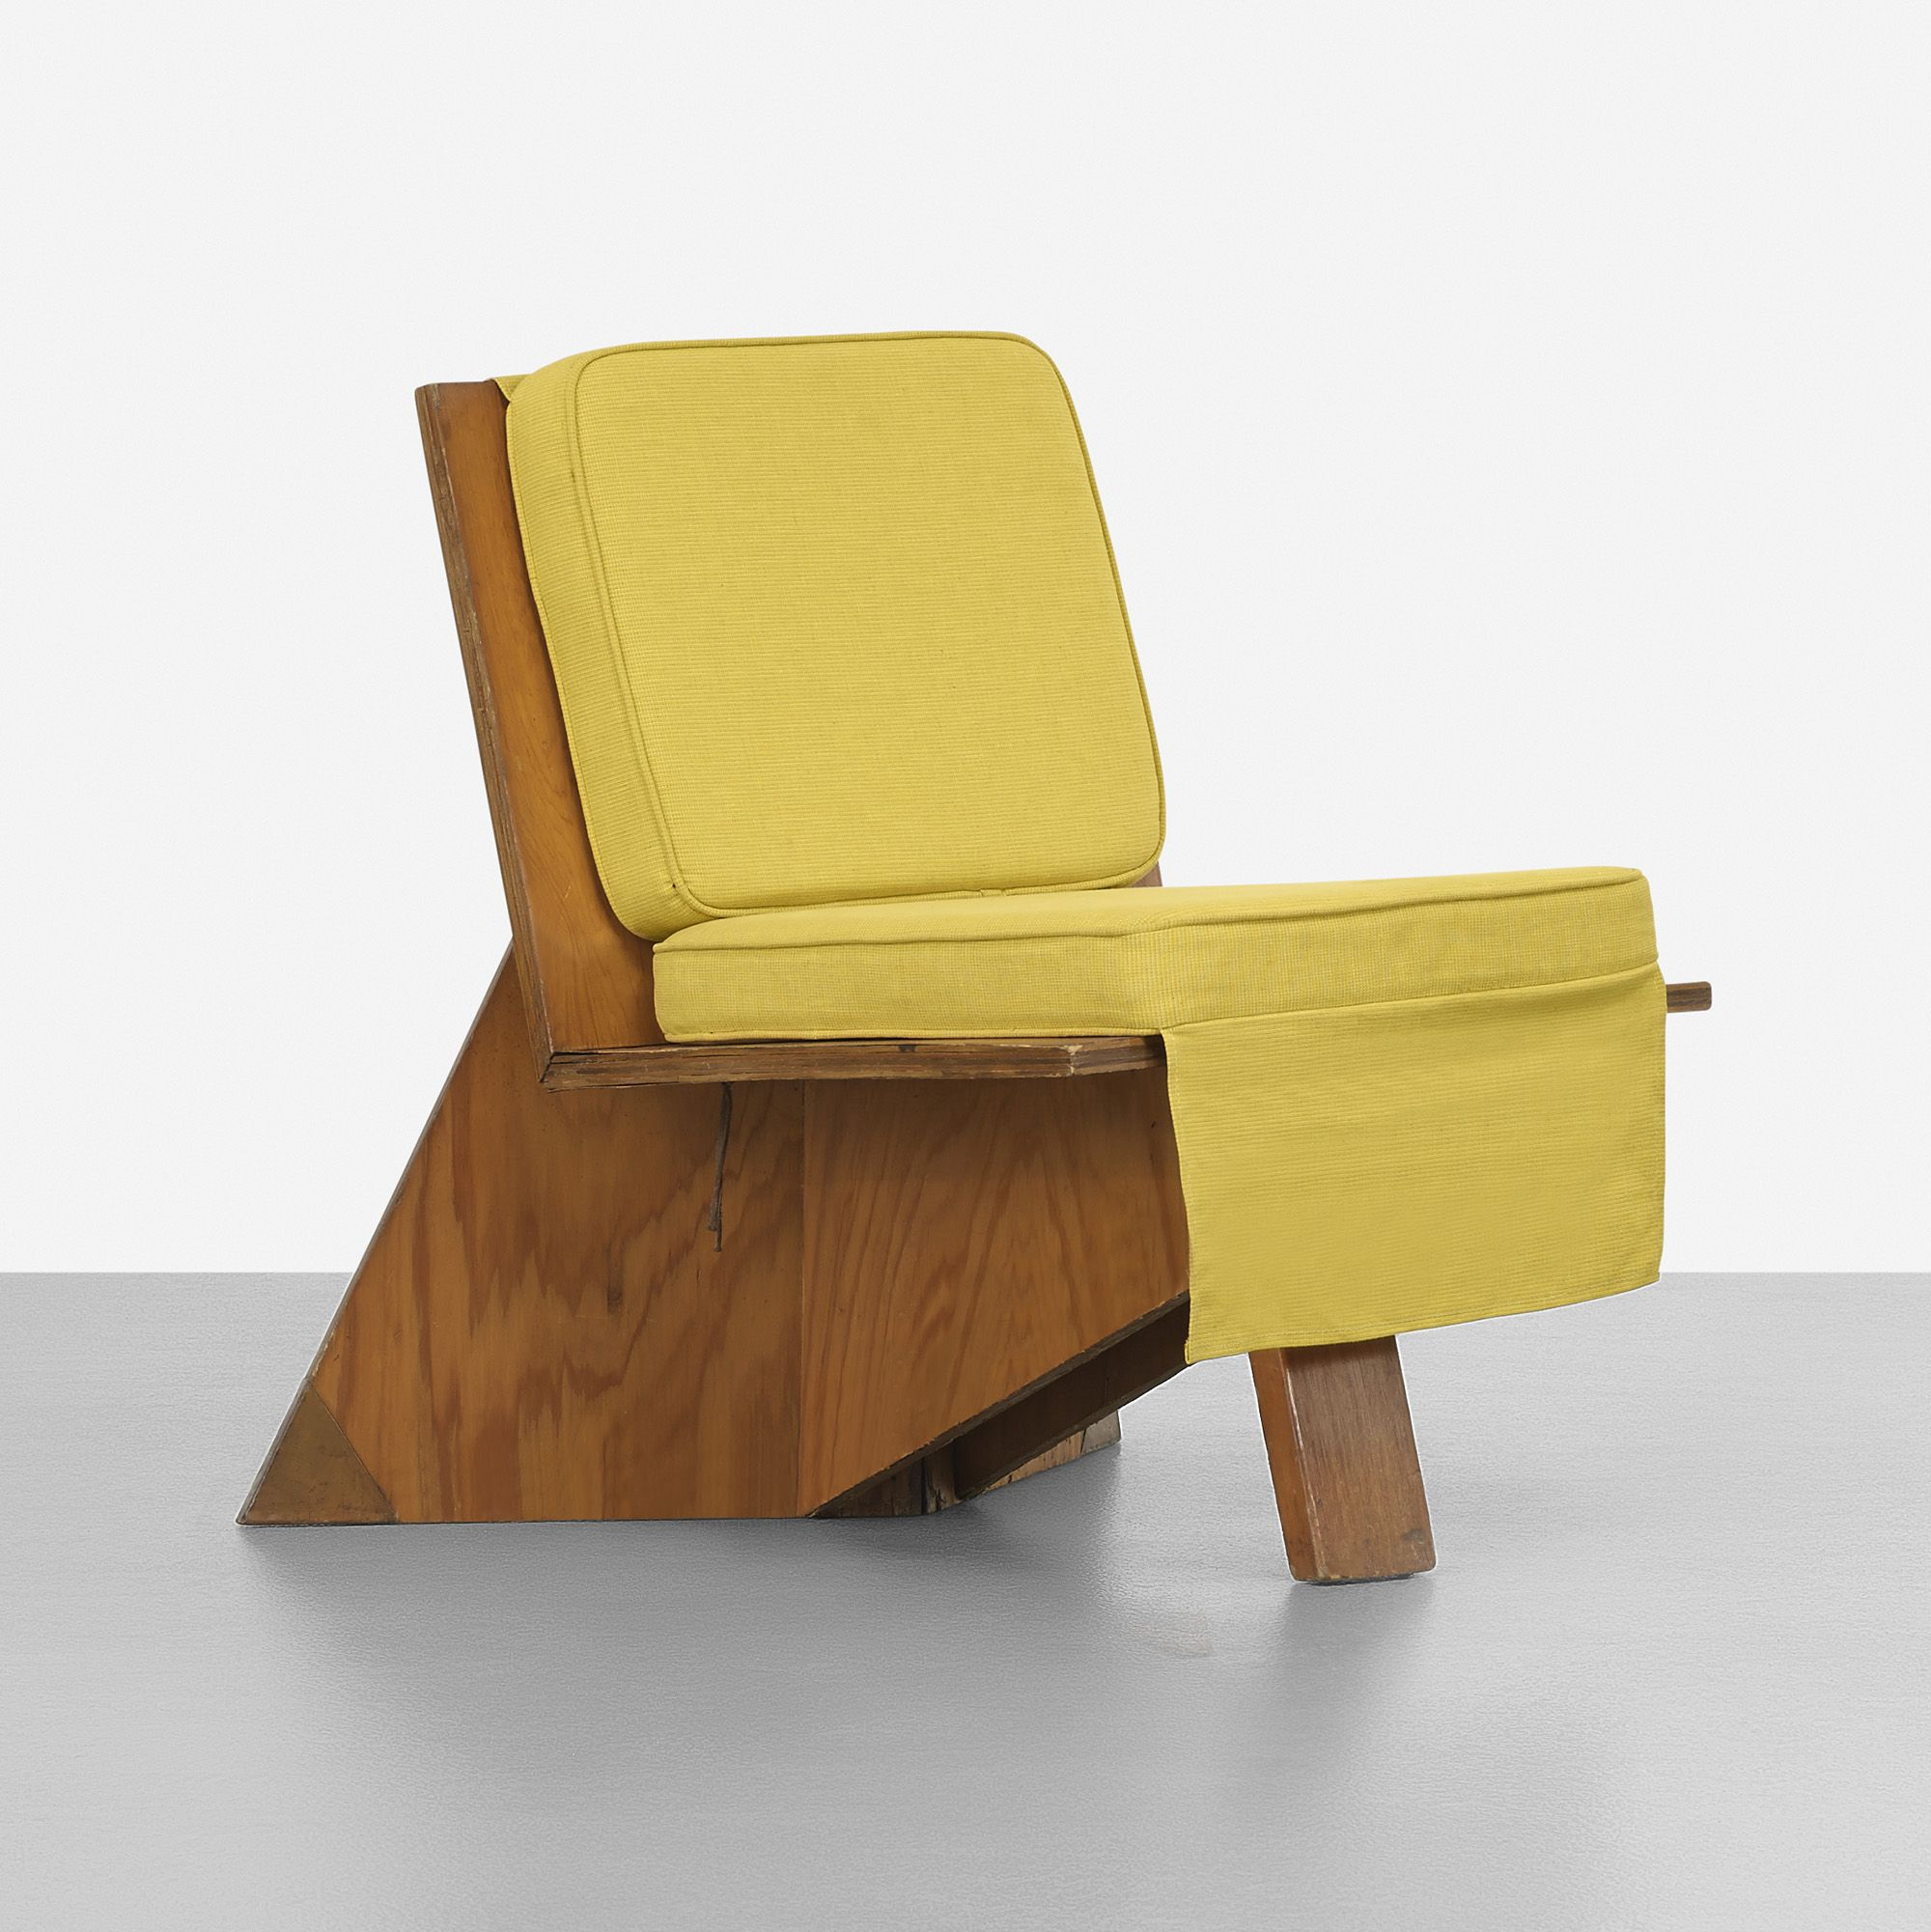 Miraculous Frank Lloyd Wright Designed Lounge Chair For The Stanley Andrewgaddart Wooden Chair Designs For Living Room Andrewgaddartcom